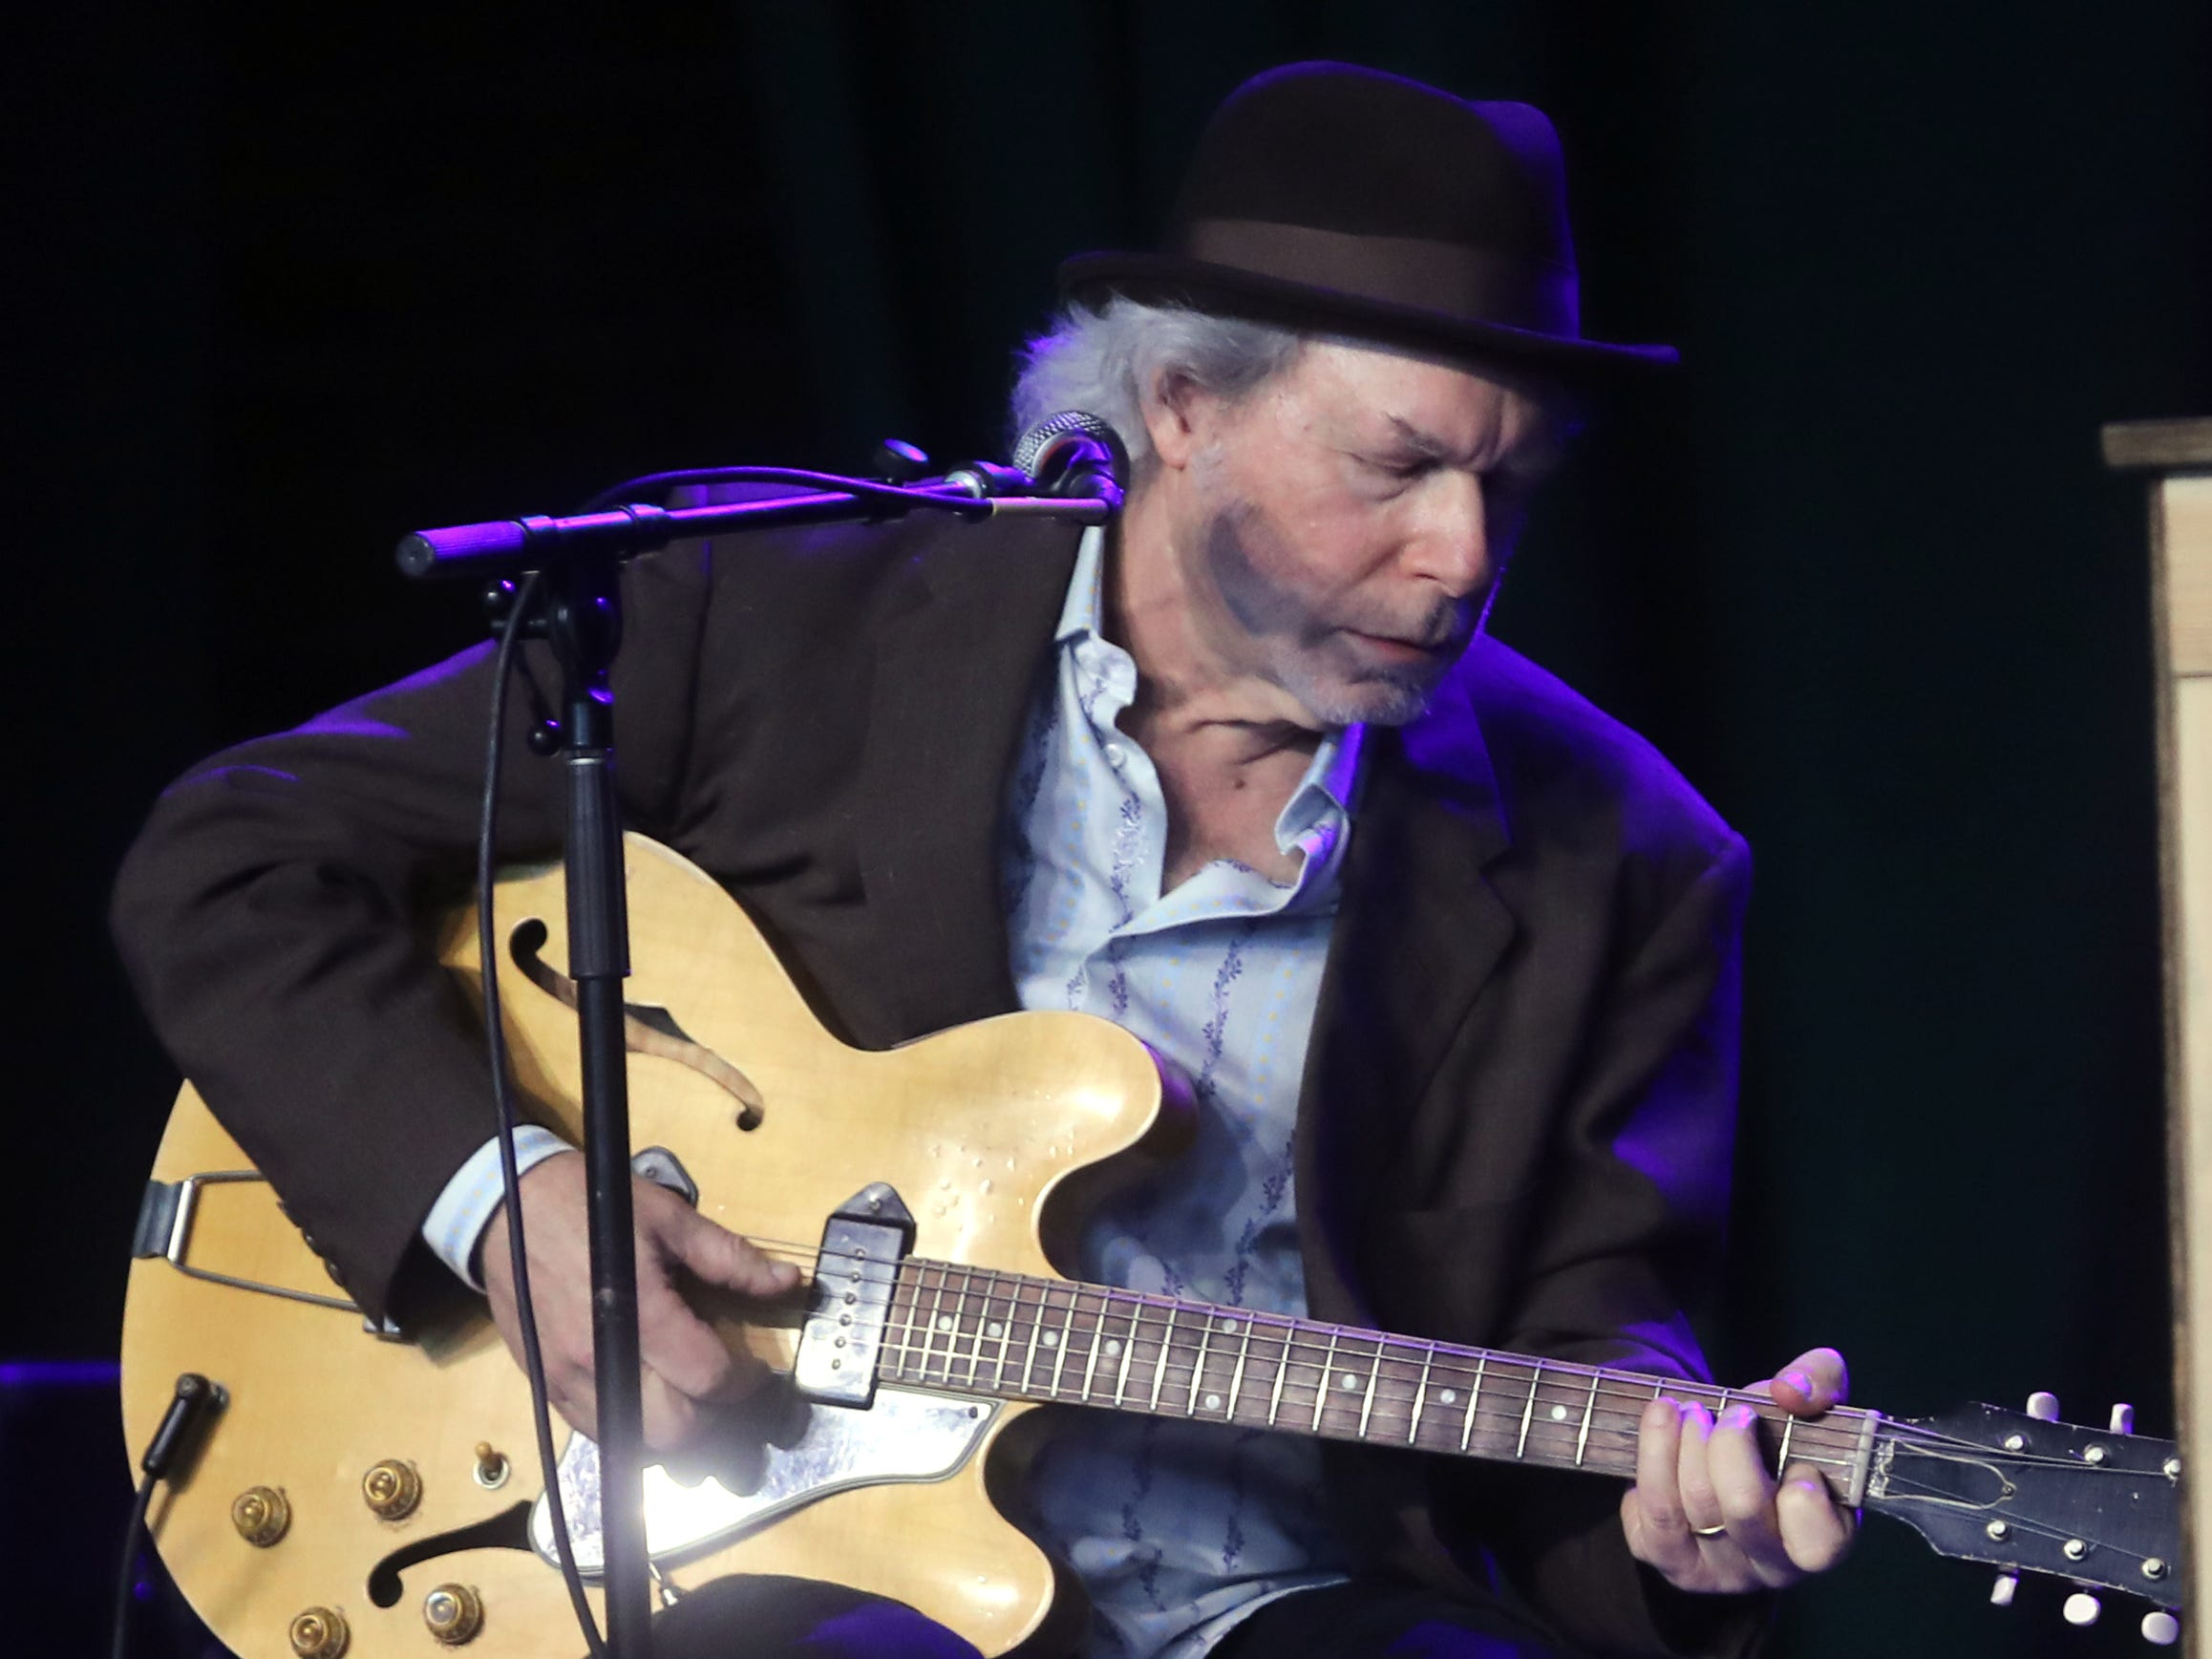 Buddy Miller performs during a Celebration of Life service held for singer-songwriter Tony Joe White at Marathon Music Works Wednesday, October 31, 2018.